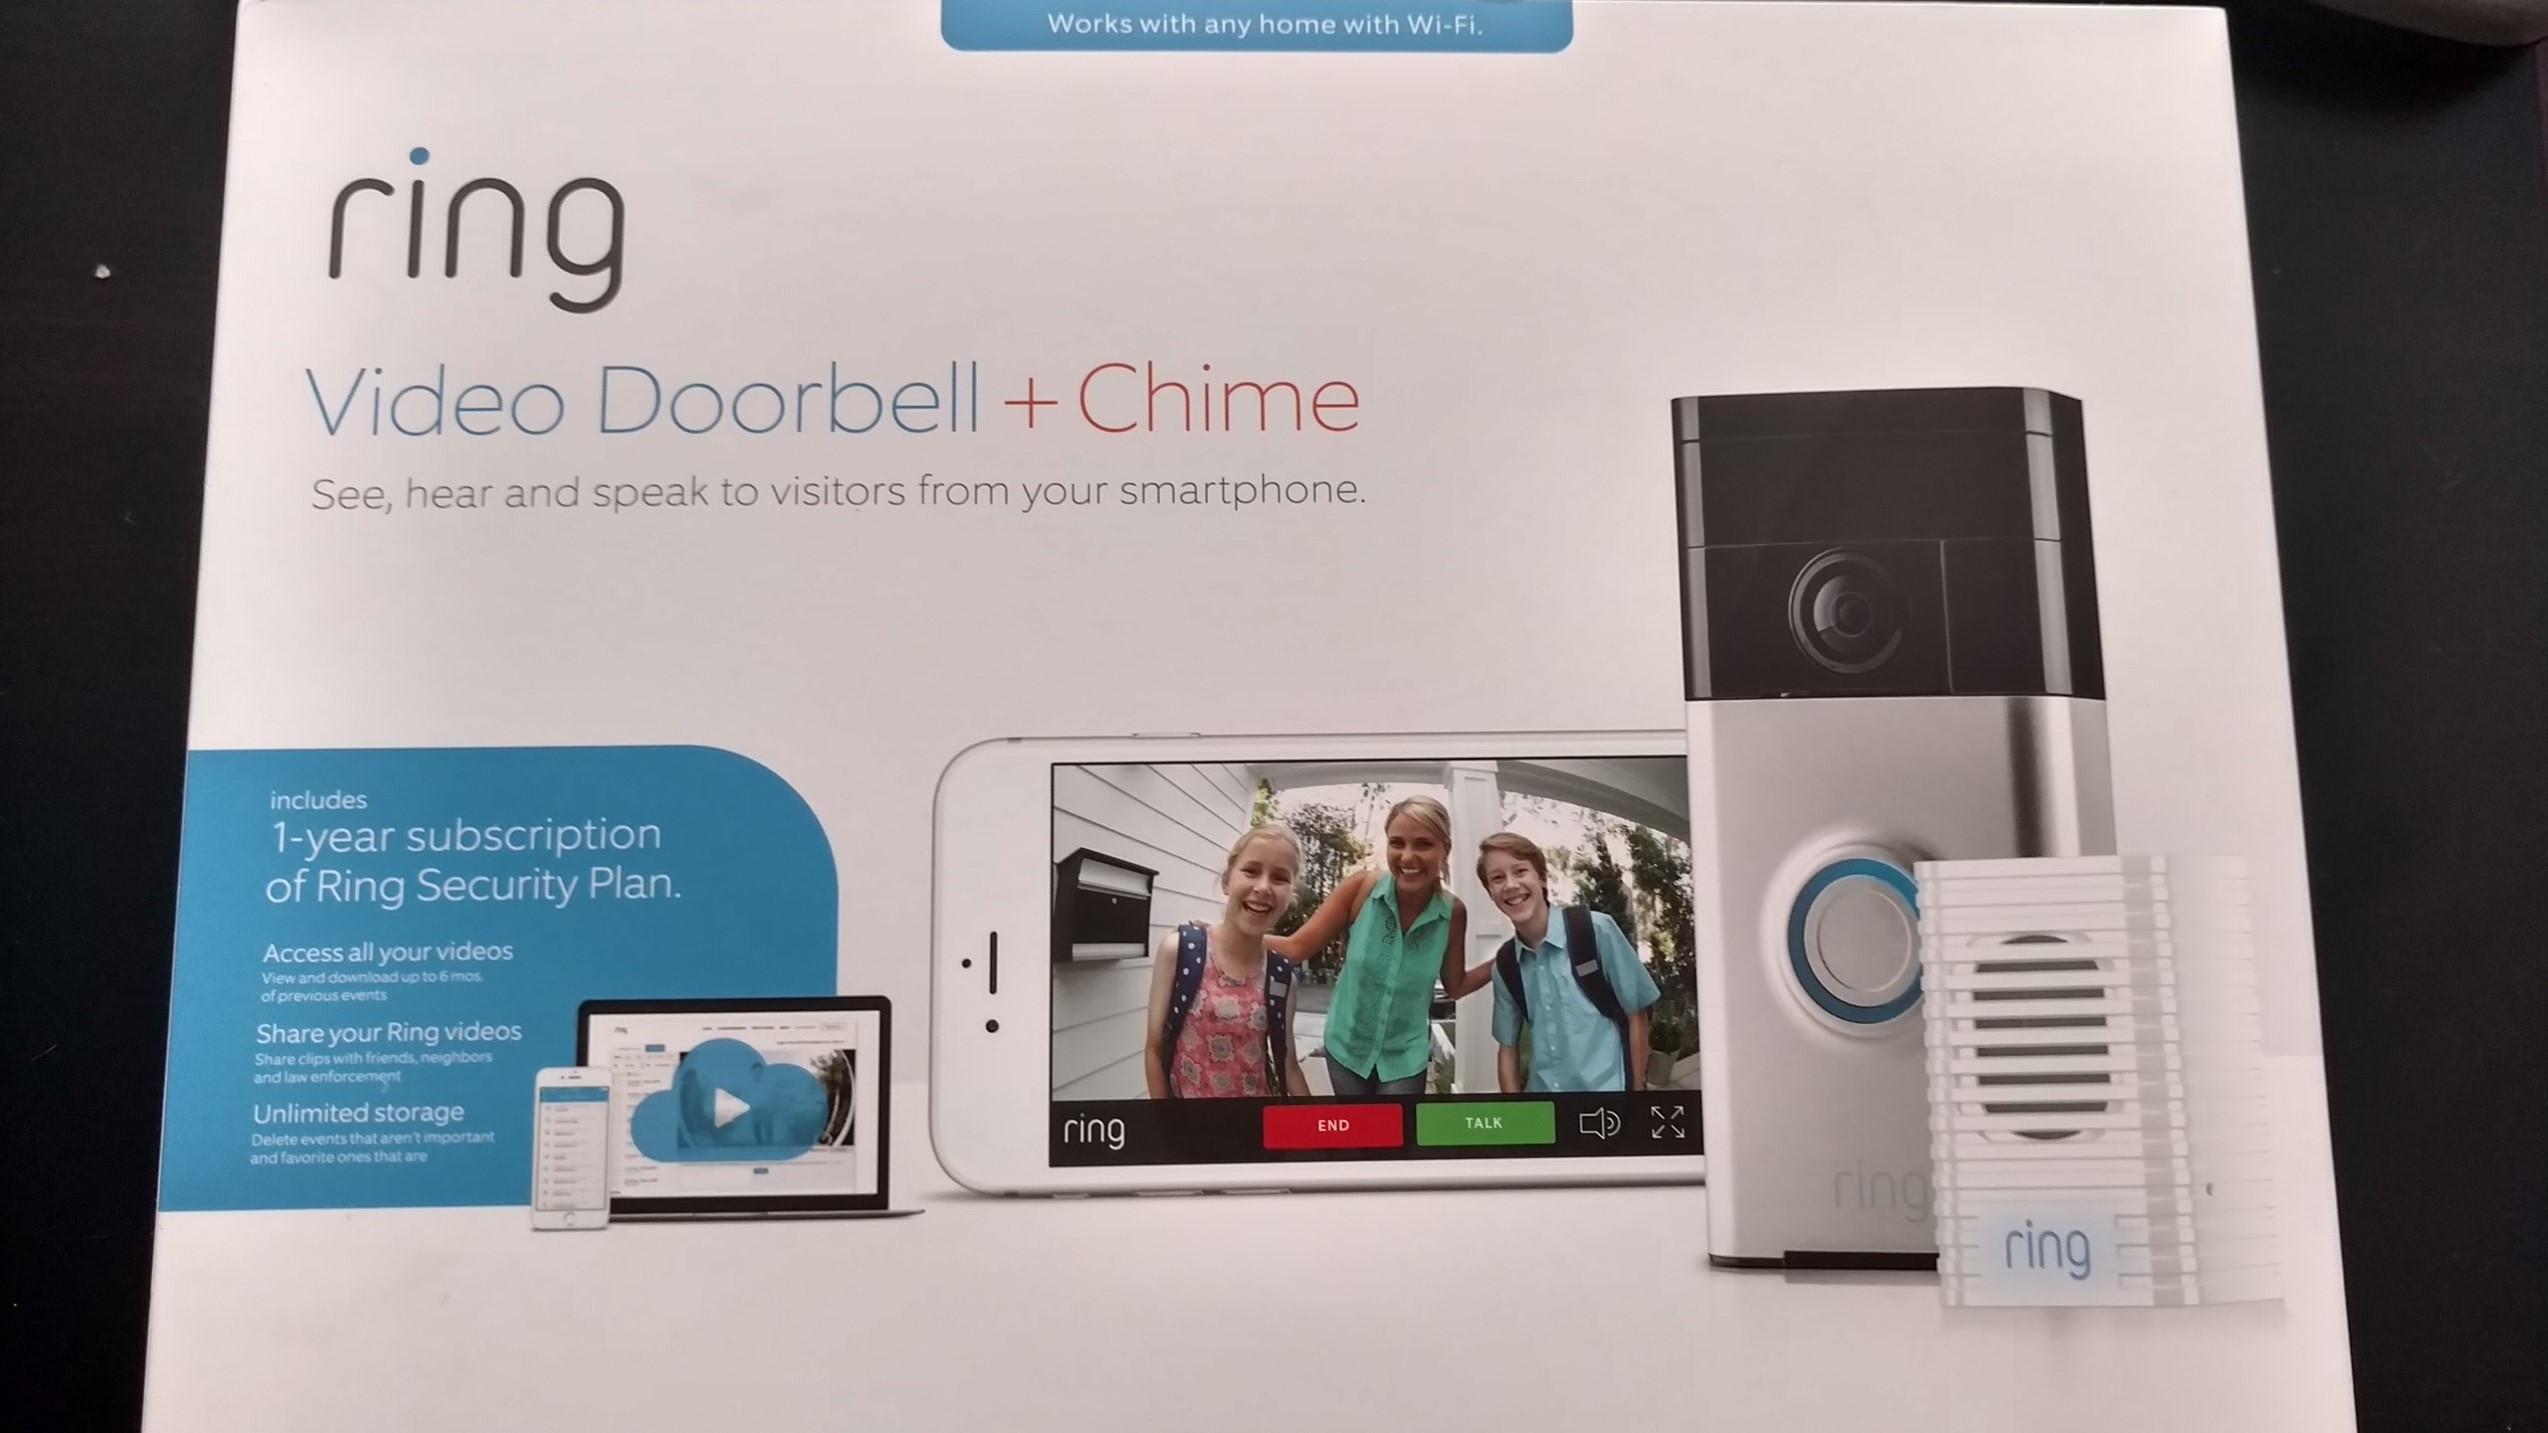 Ring Wi-Fi Enabled Video Doorbell and Wi-Fi Enabled Chime. Includes 1 Year Cloud Video Recording Subscription. by